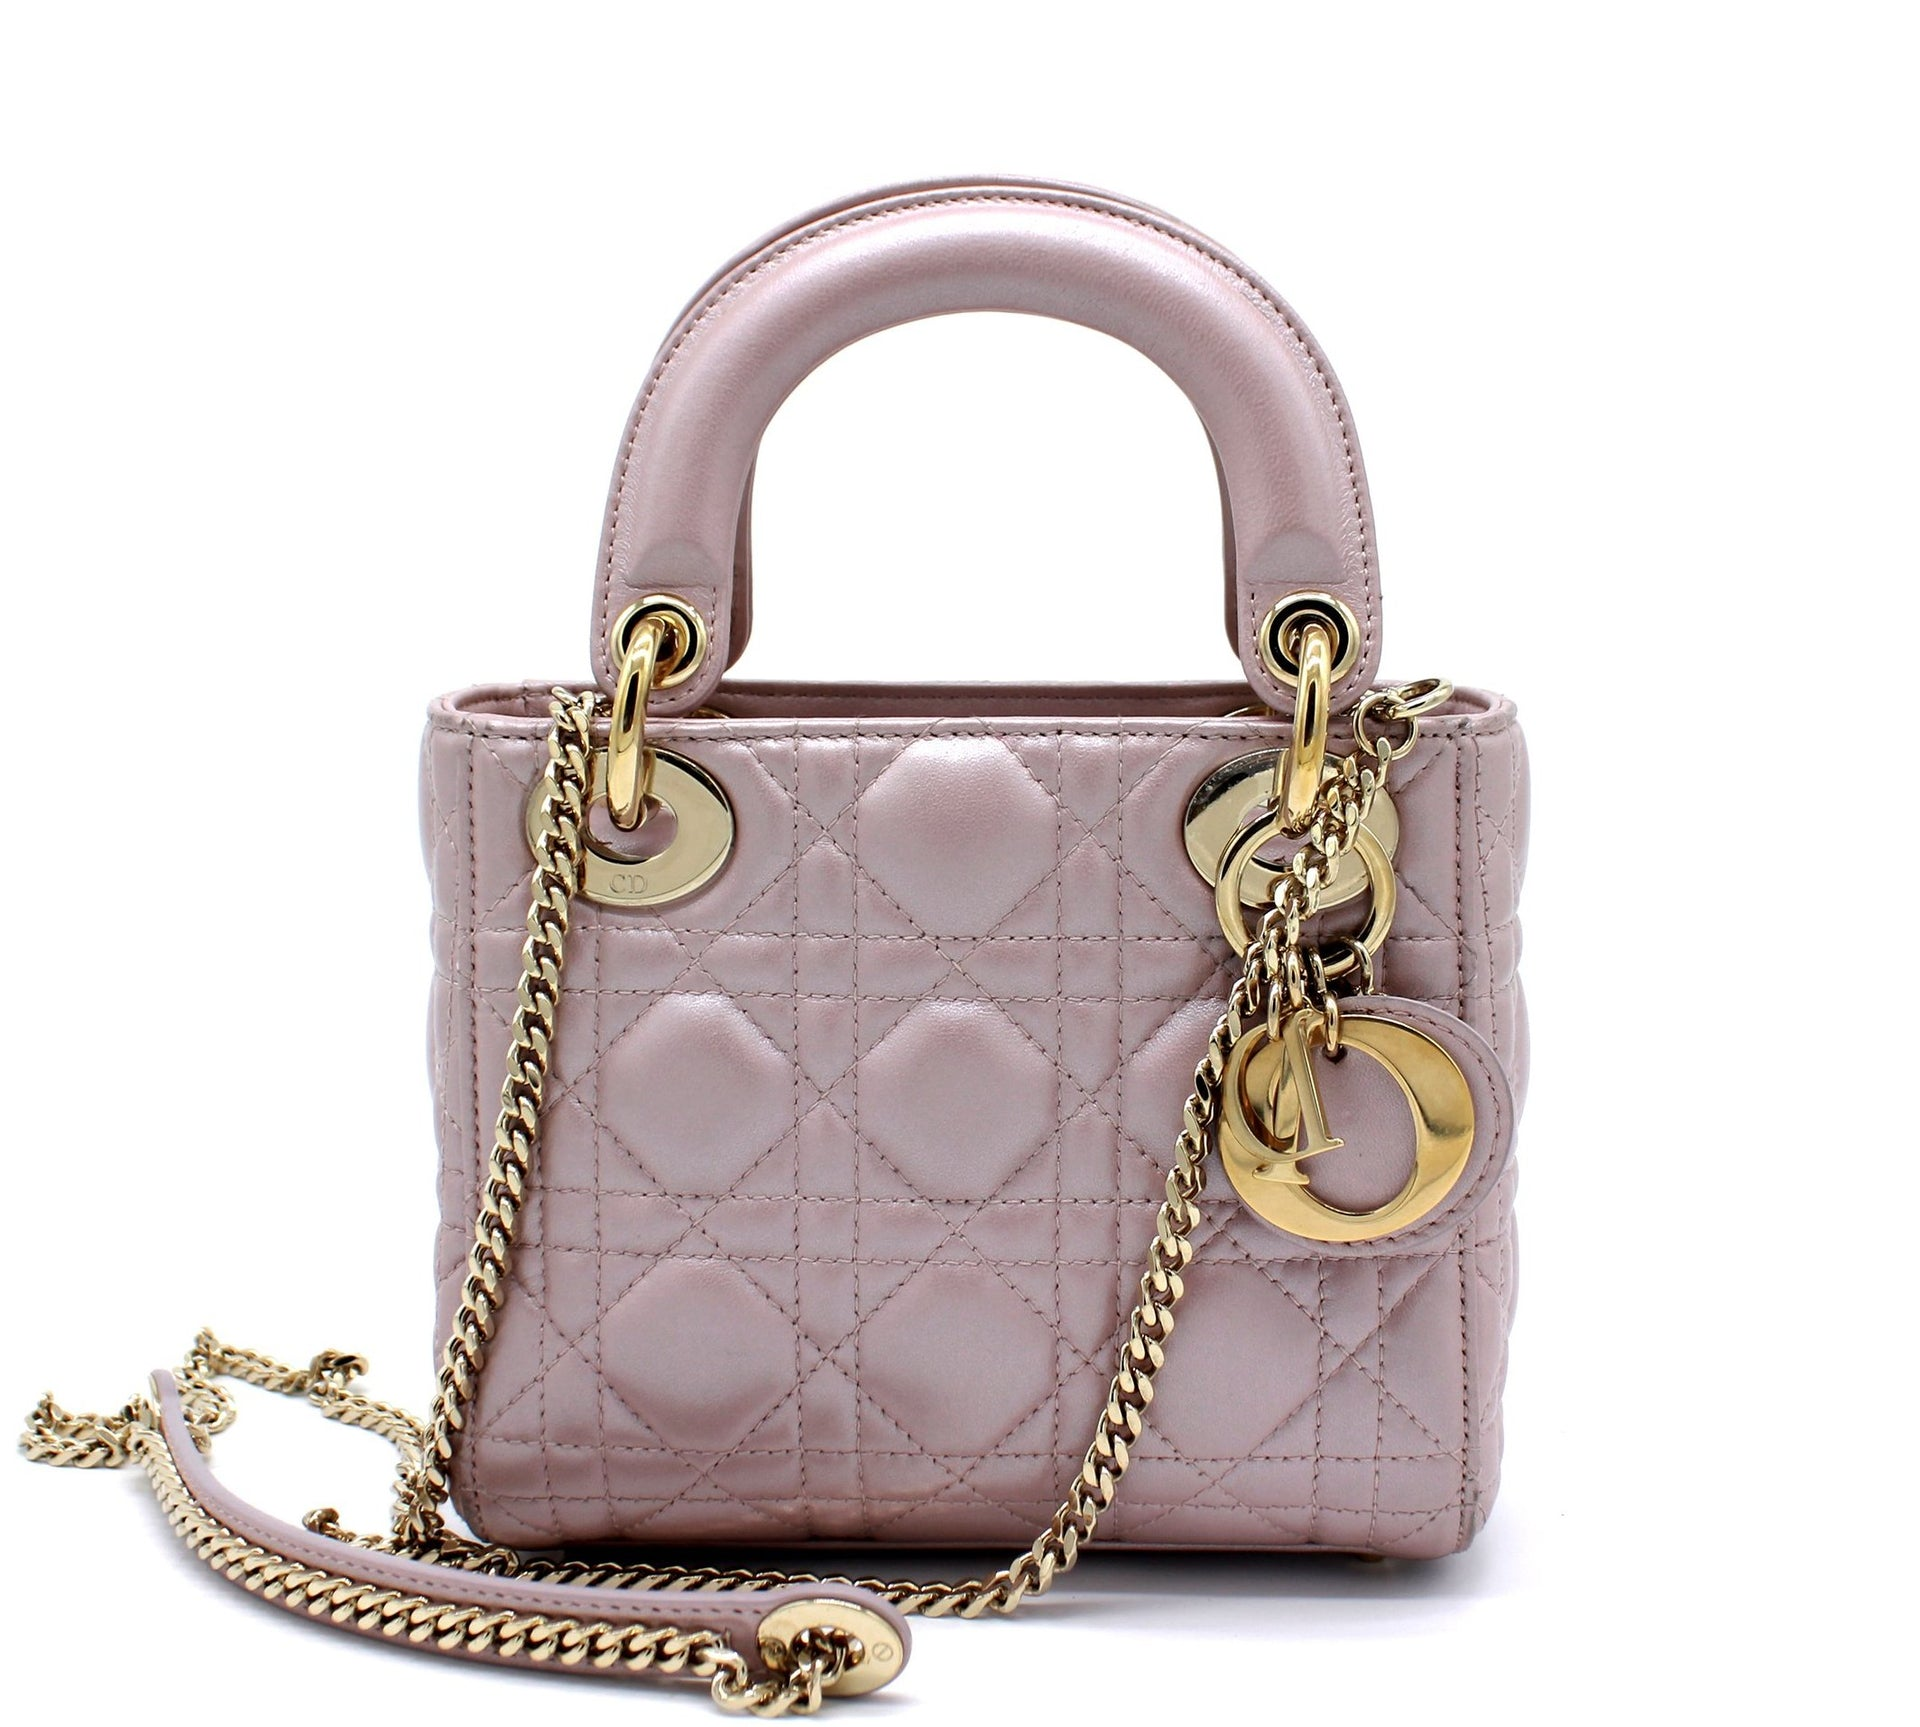 cb468caa77 Christian Dior Lady Dior Bag with Chain in Pearly Lambskin – STYLISHTOP